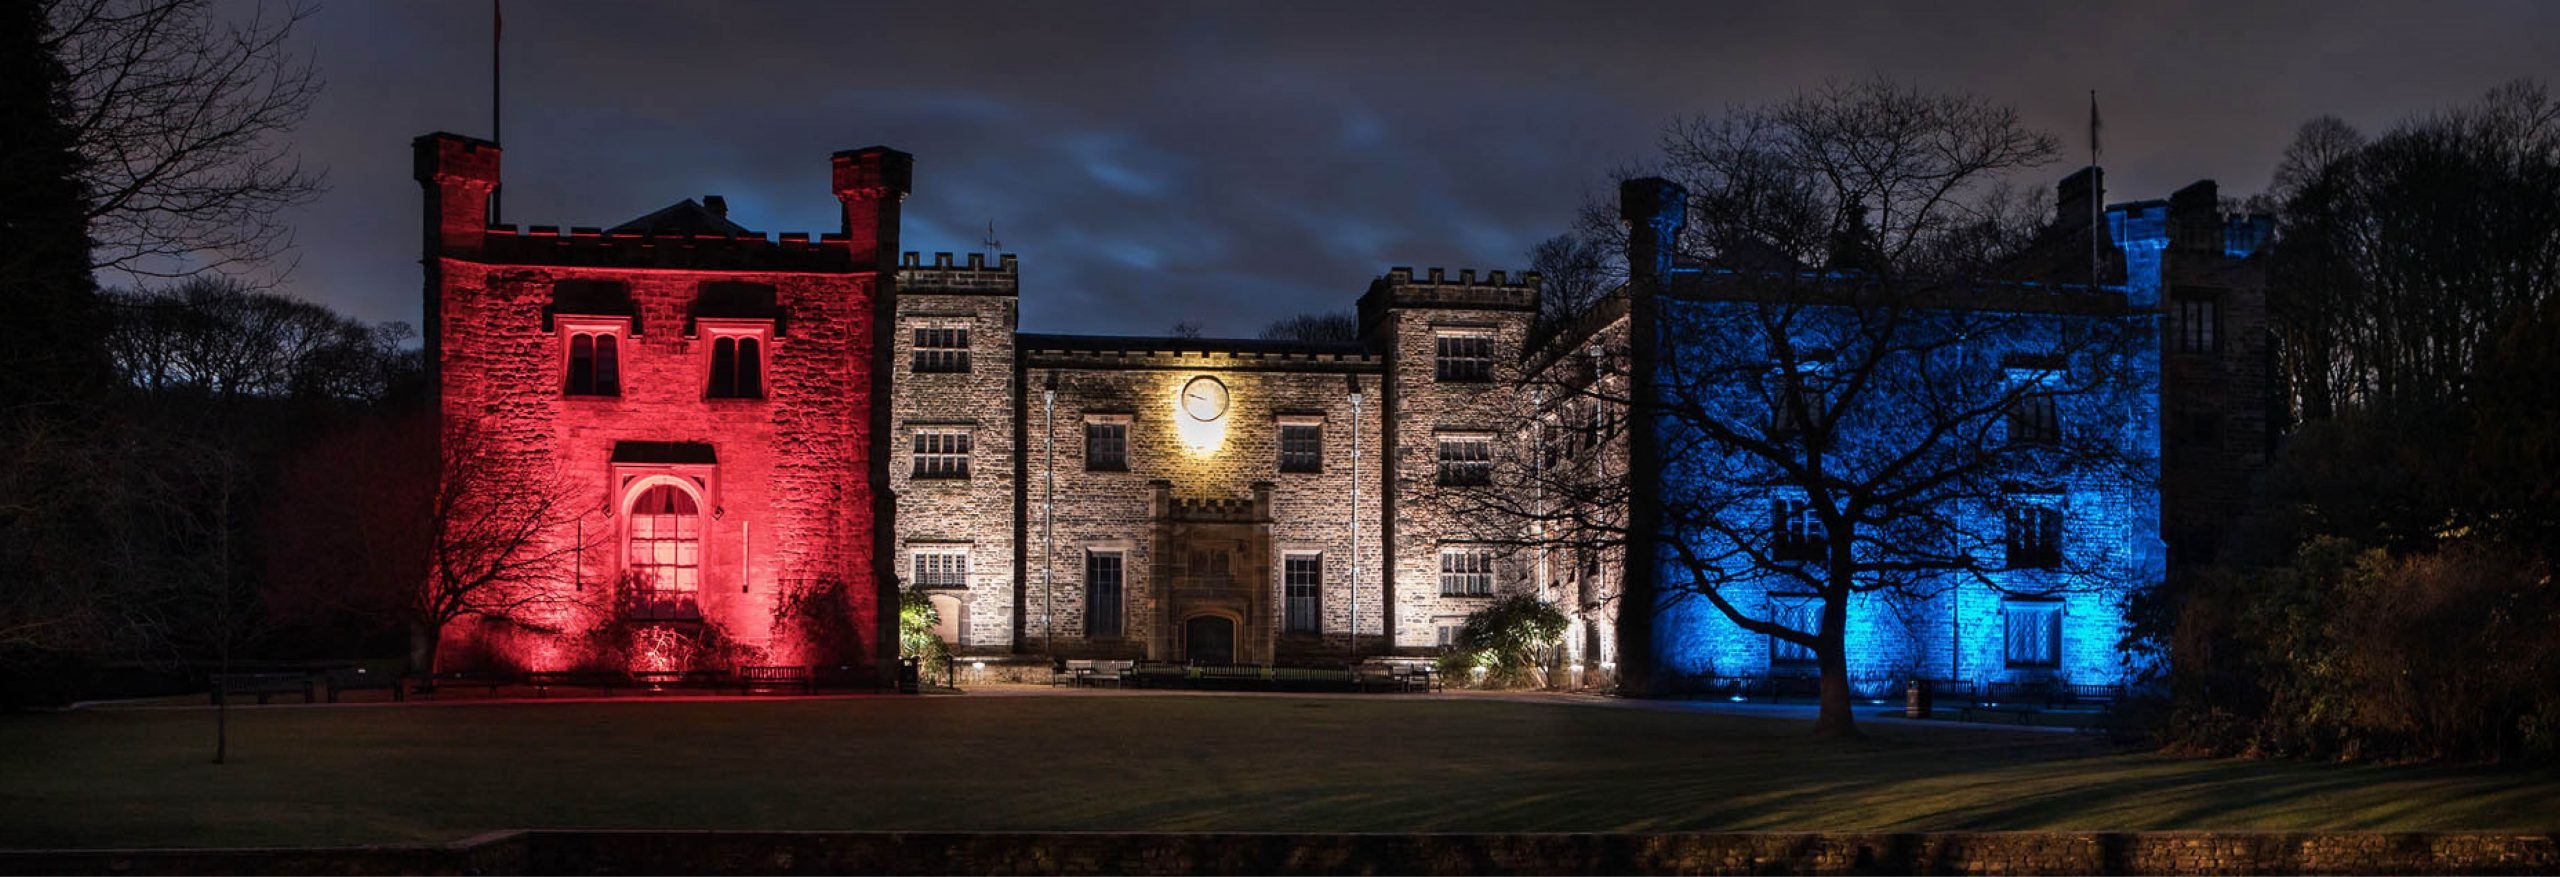 BLOG POST: Lighting historic buildings and structures - key considerations